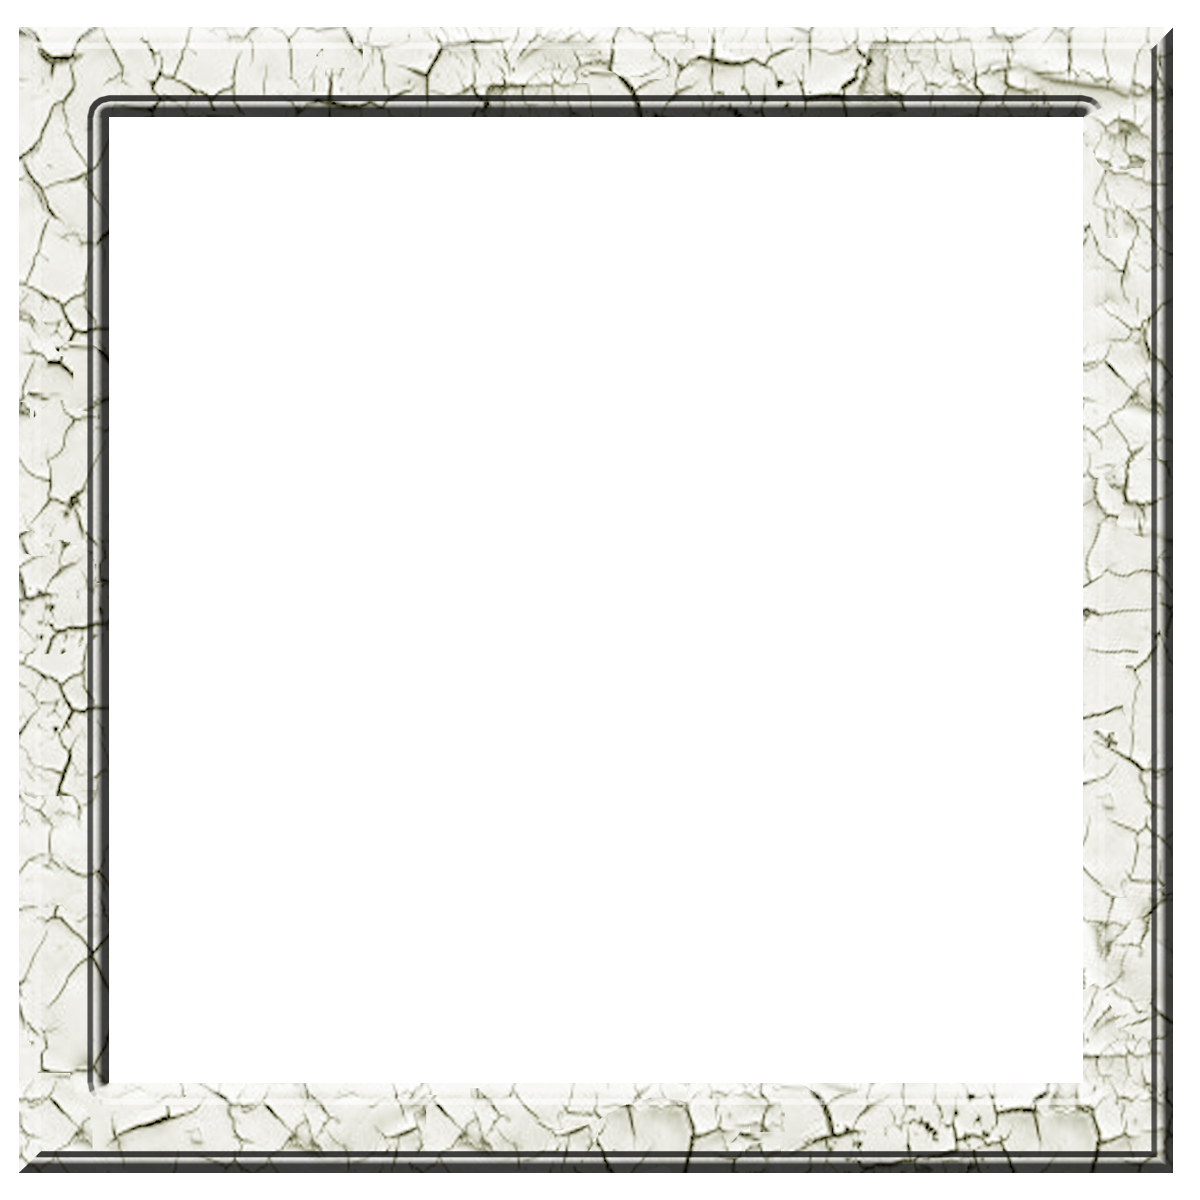 Square Frame Transparent PNG Pictures - Free Icons and PNG Backgrounds